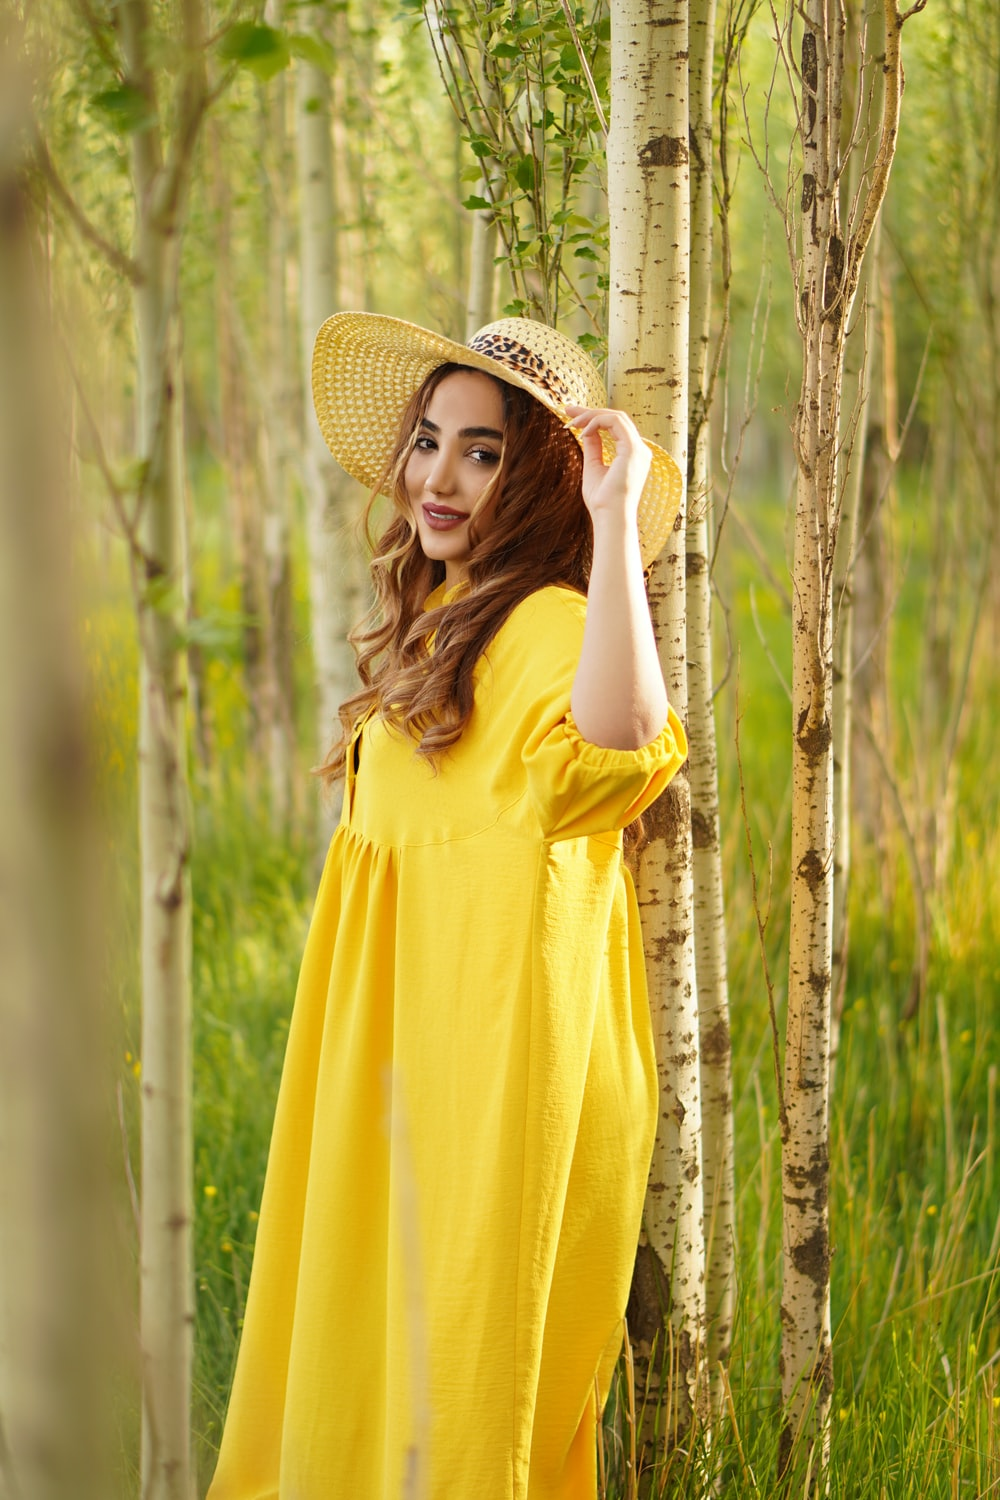 woman in yellow dress wearing brown straw hat